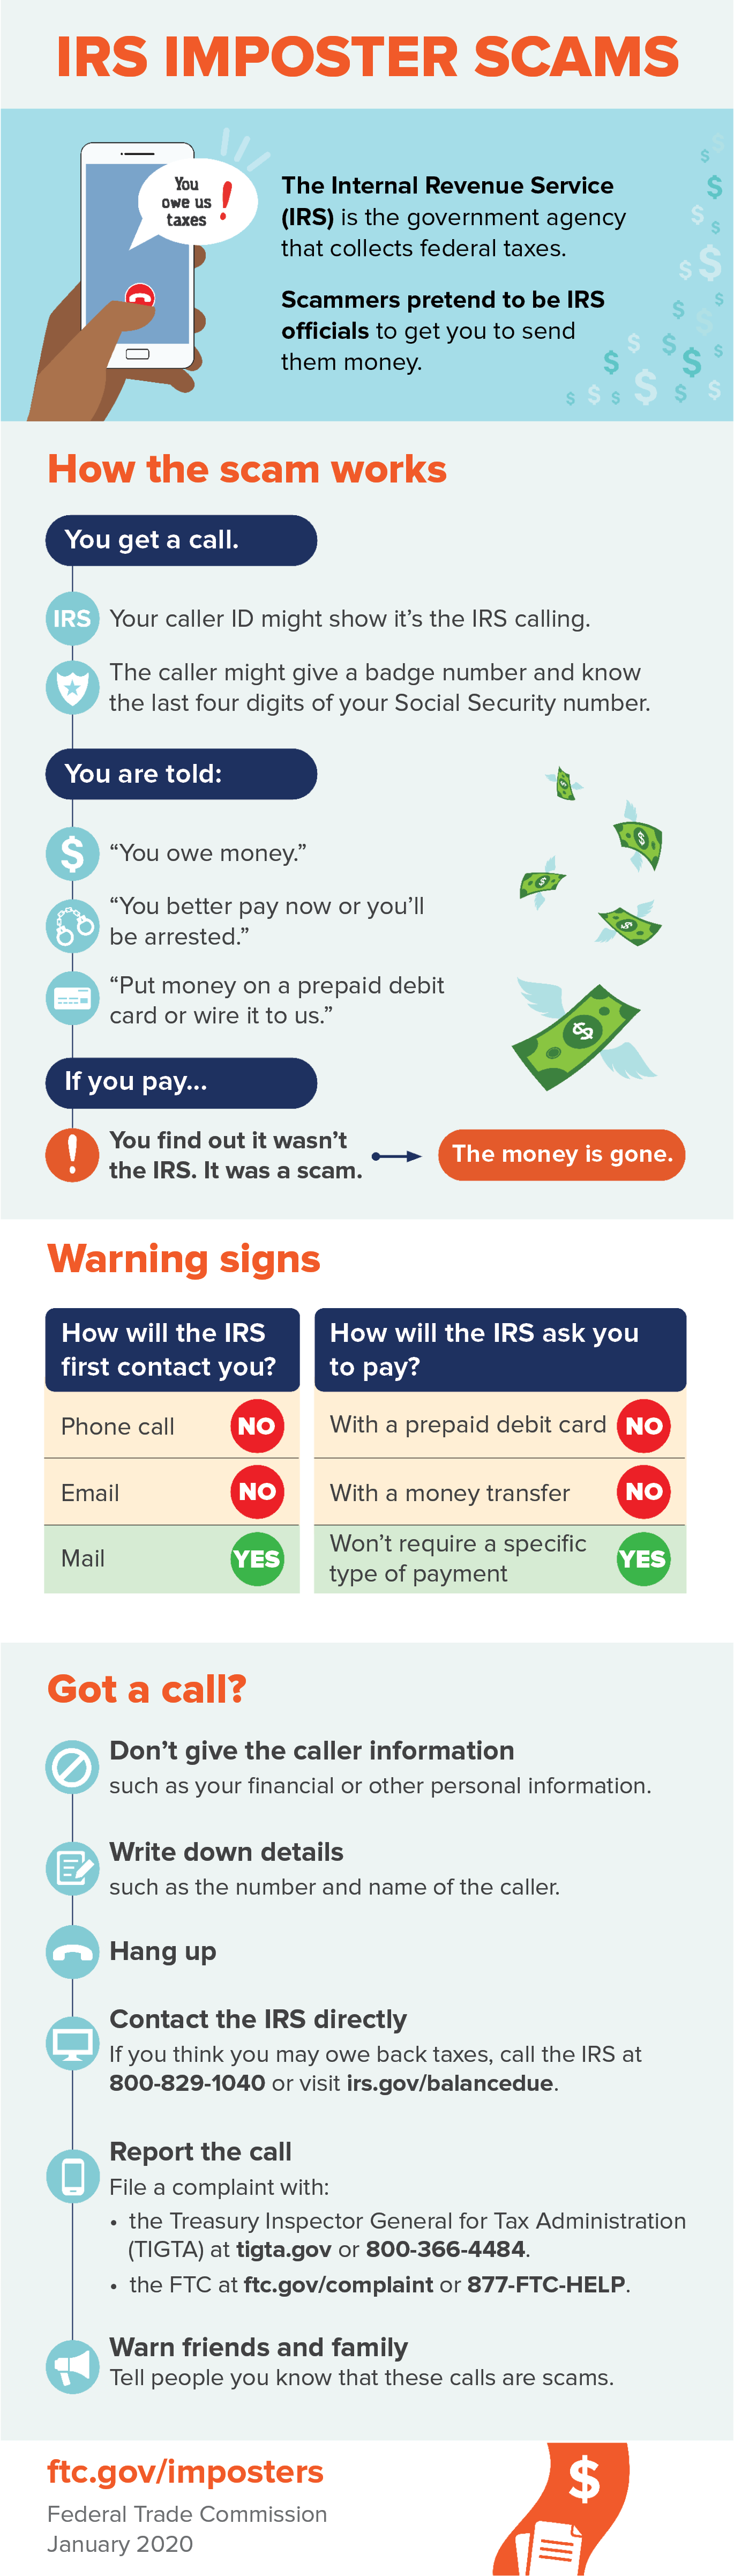 Scammers pretend to be IRS officials to get you to send them money.